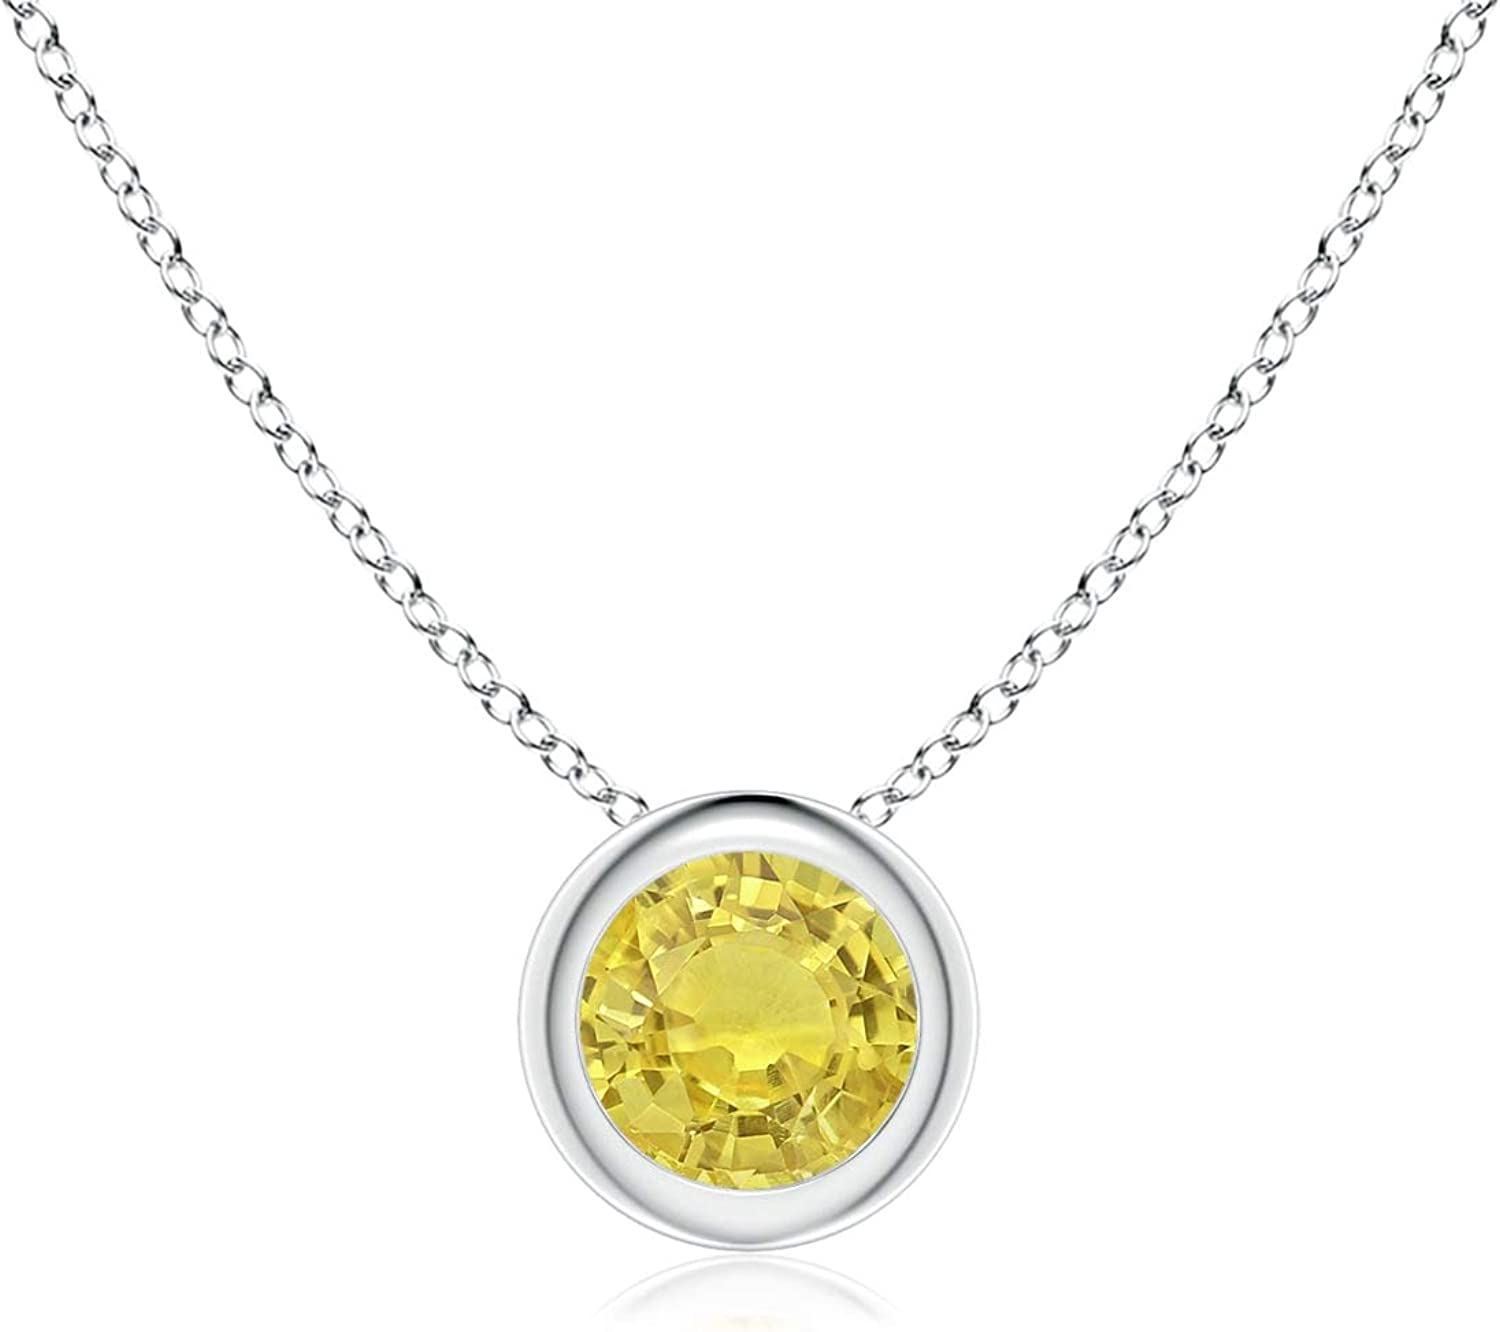 Shipping included Bezel-Set Round cheap Yellow Sapphire 4mm Solitaire Pendant Sa